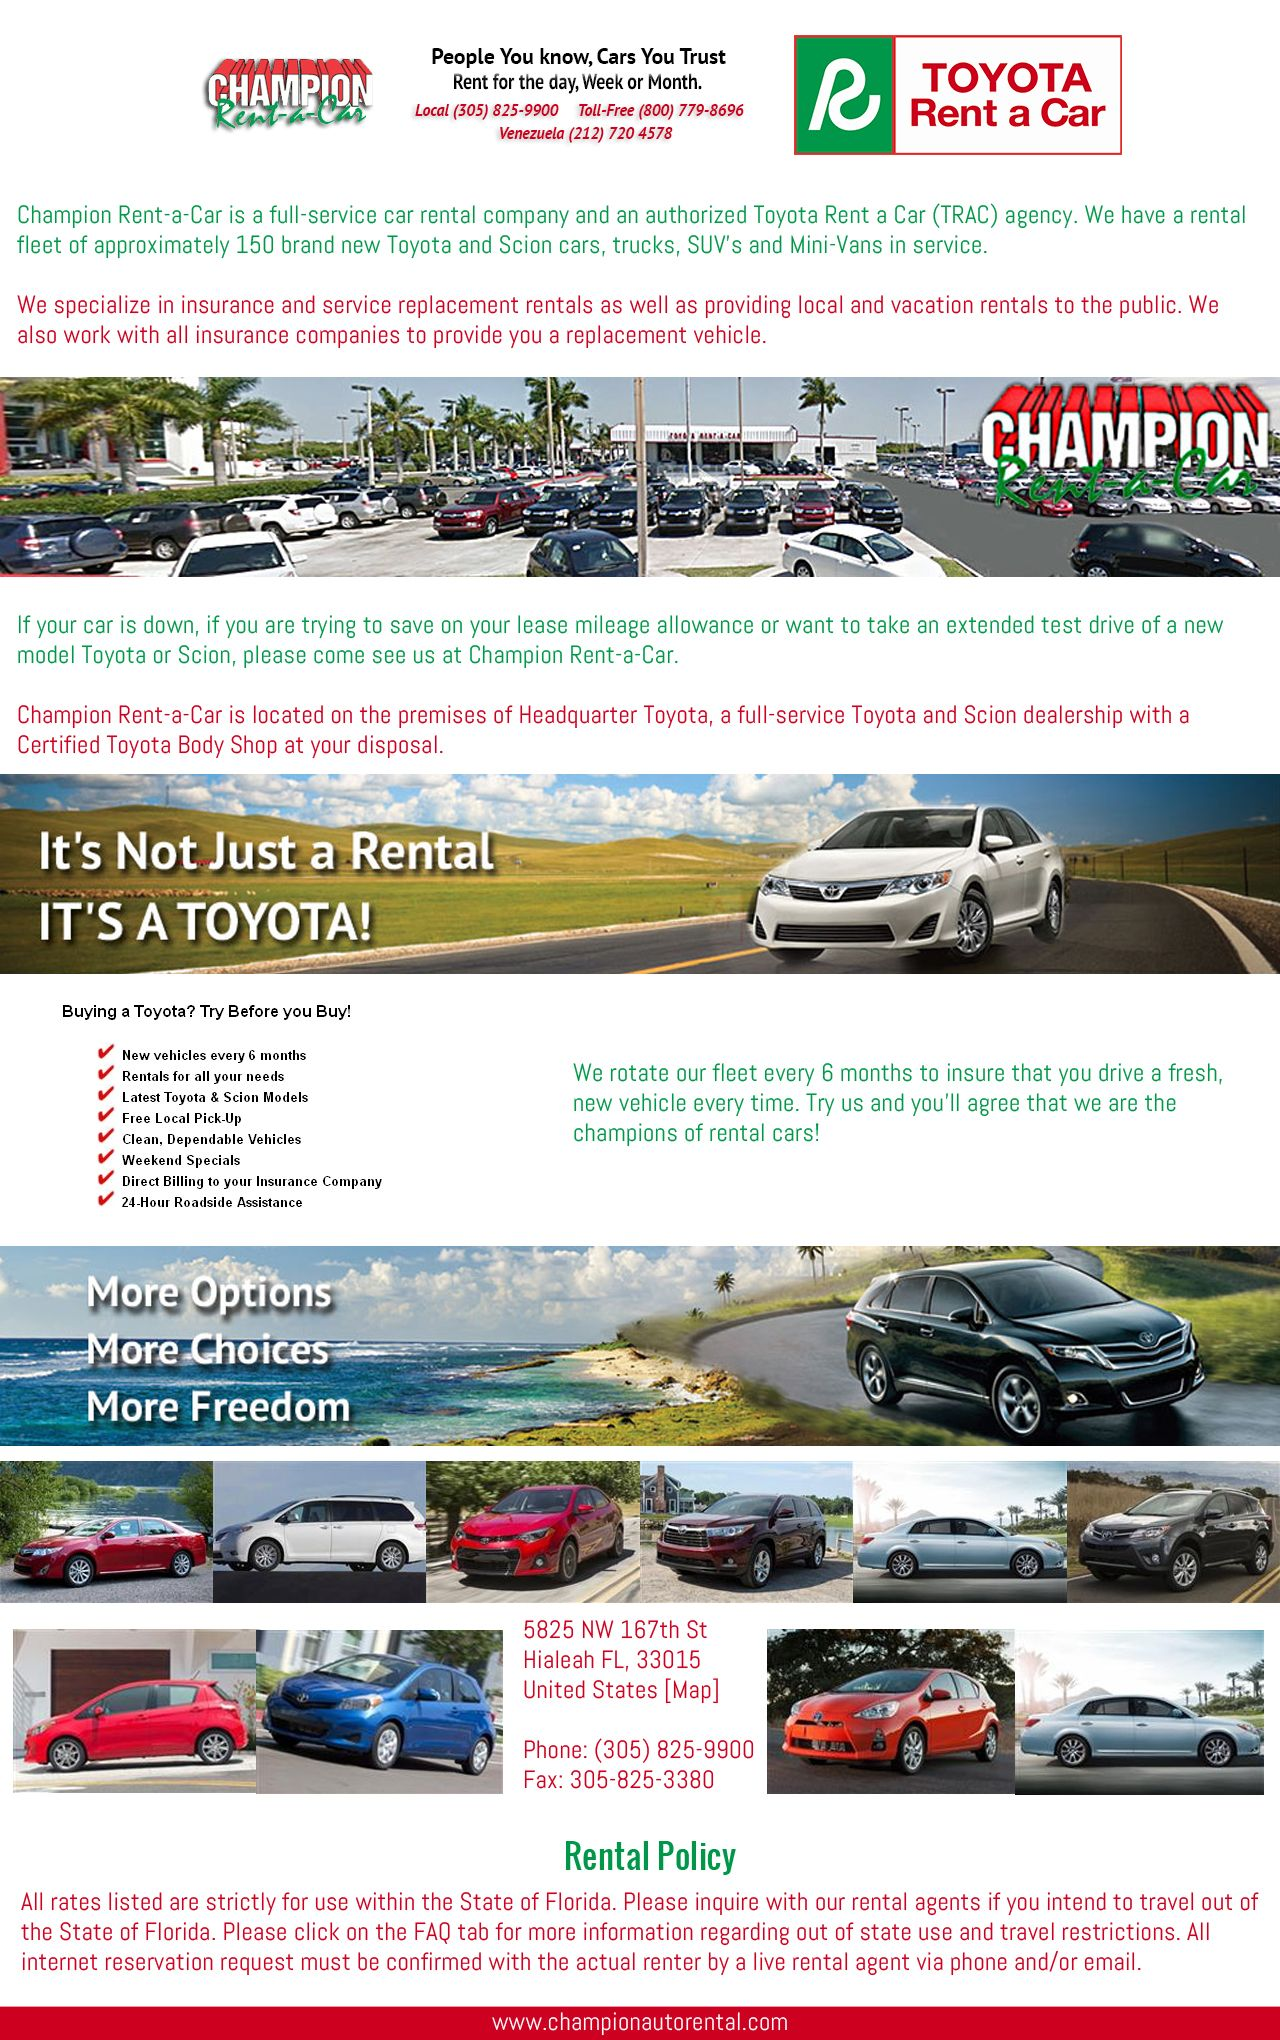 Http Www Championautorental Com We Specialize In Insurance And